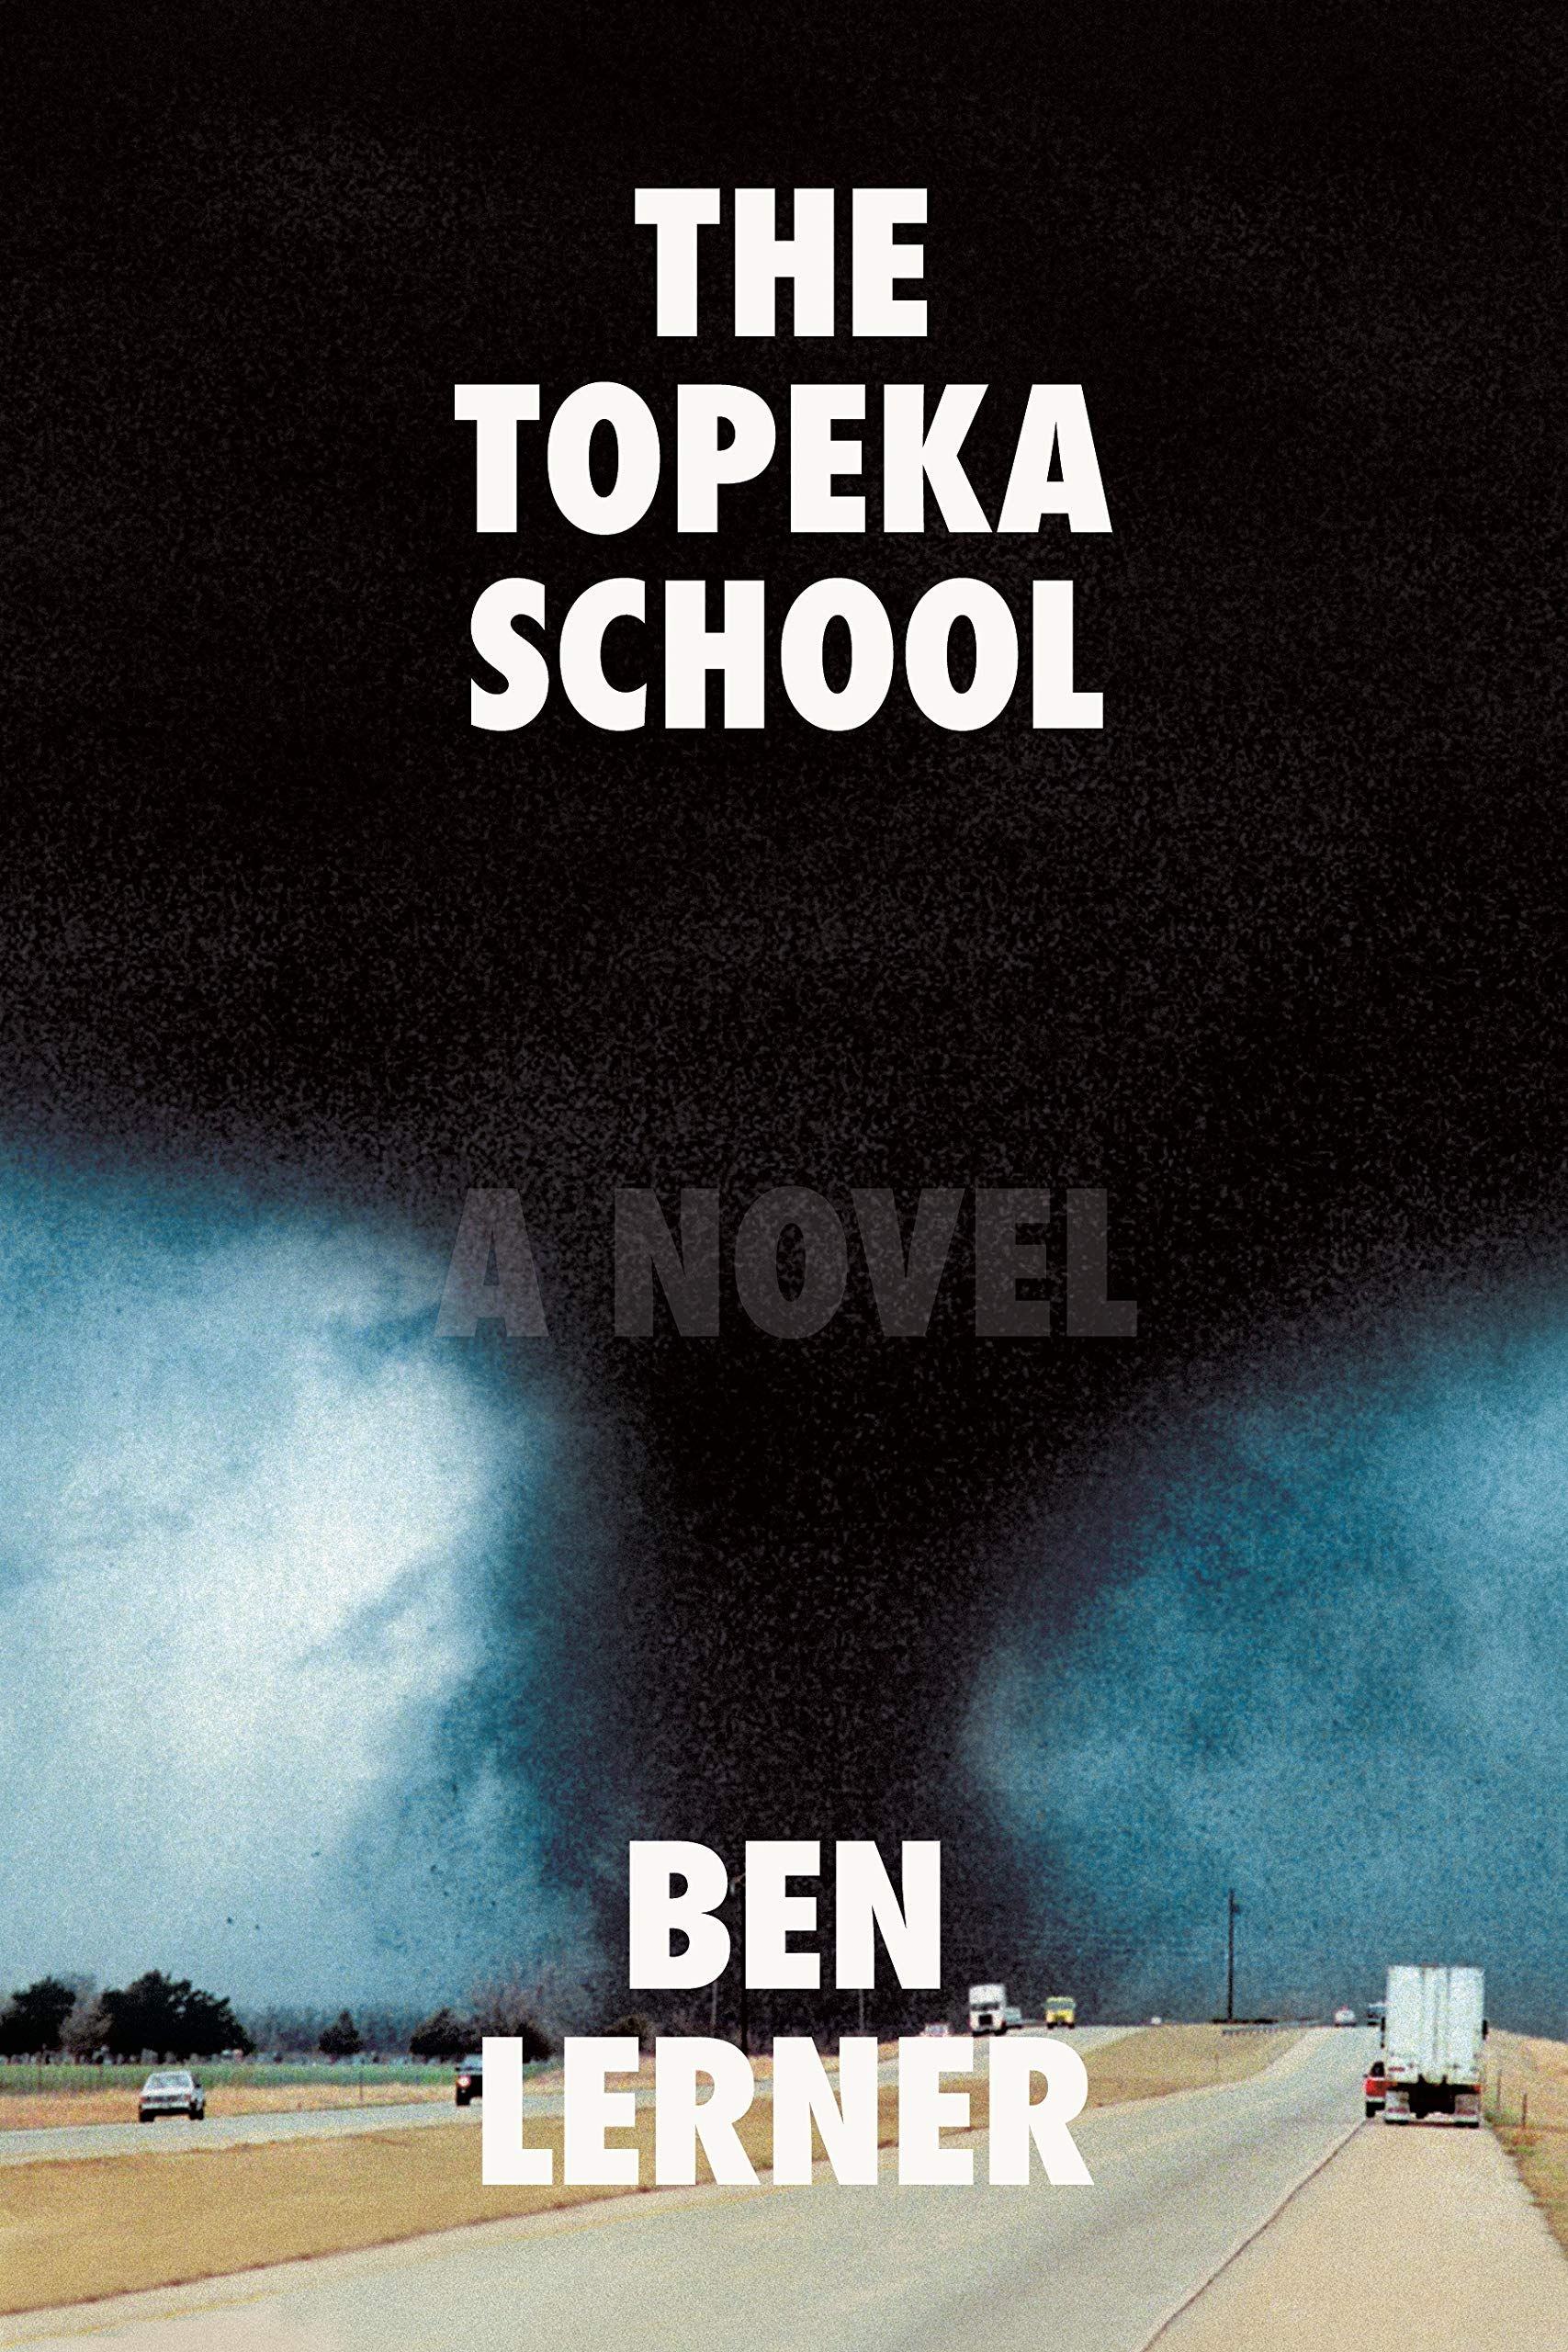 The Topeka School: A Novel by Farrar, Straus and Giroux